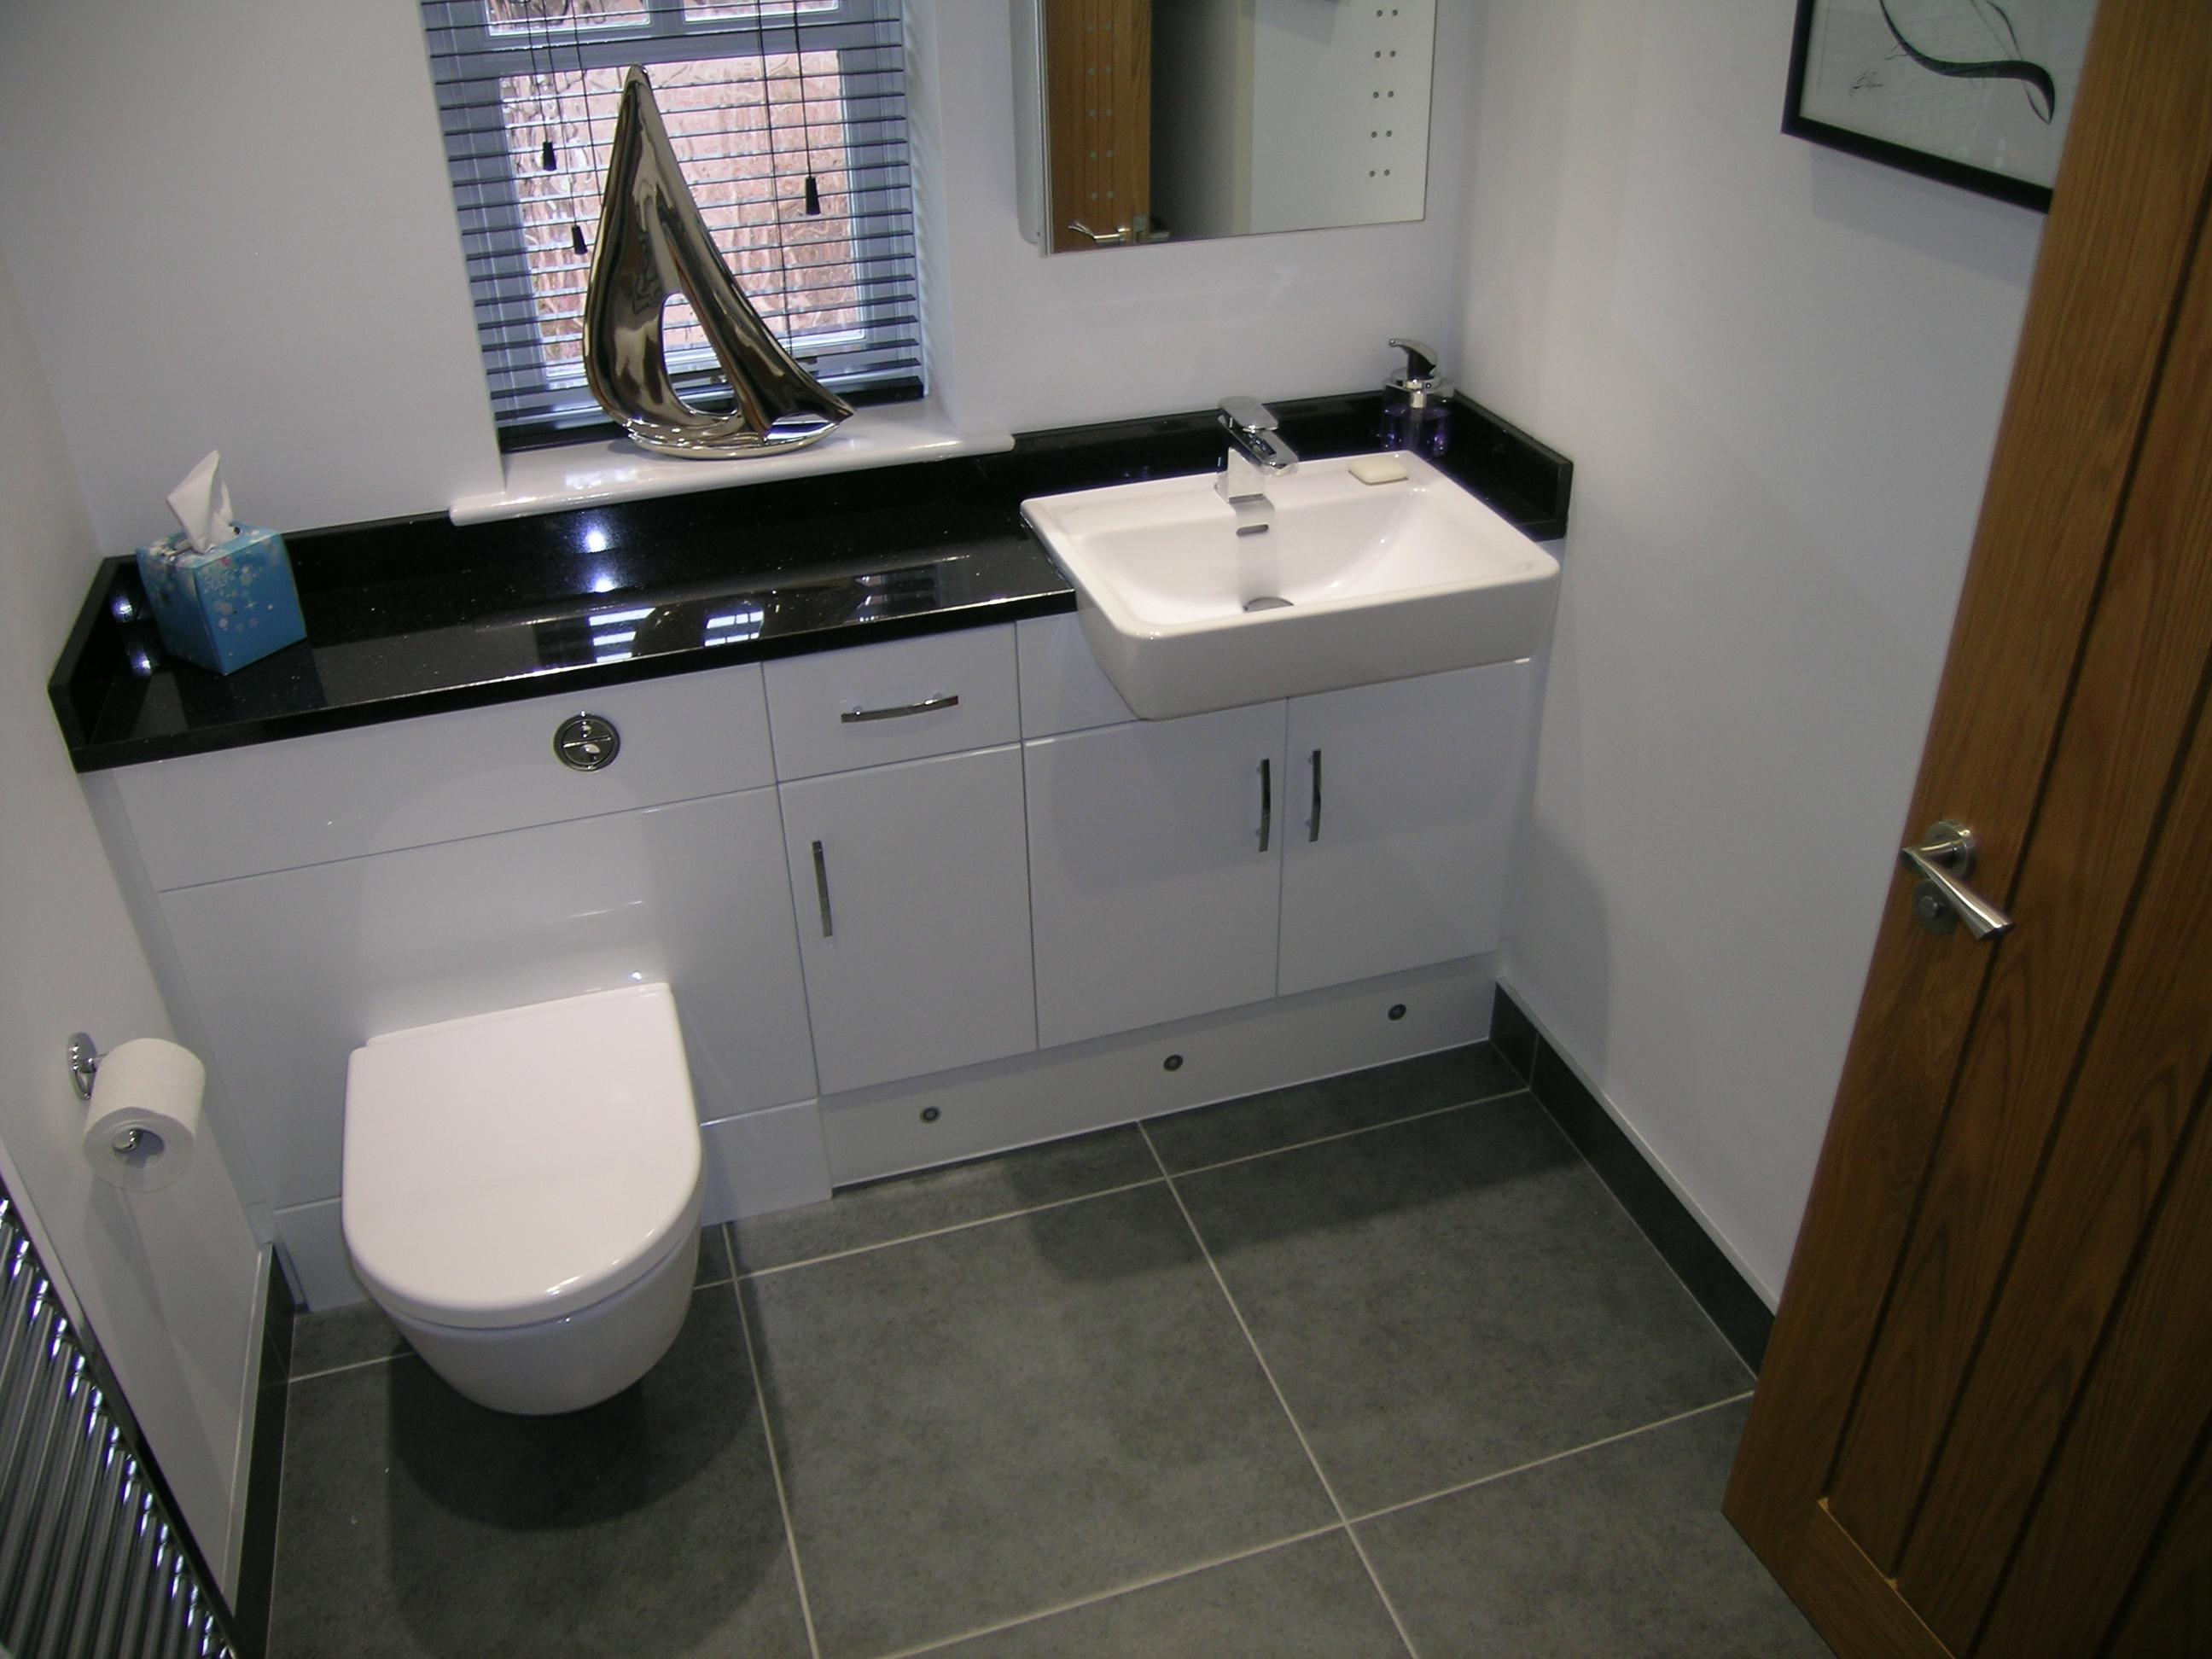 Luxury Bathrooms West Midlands bathroom fitters bathroom installers luxury bathrooms shrewsbury